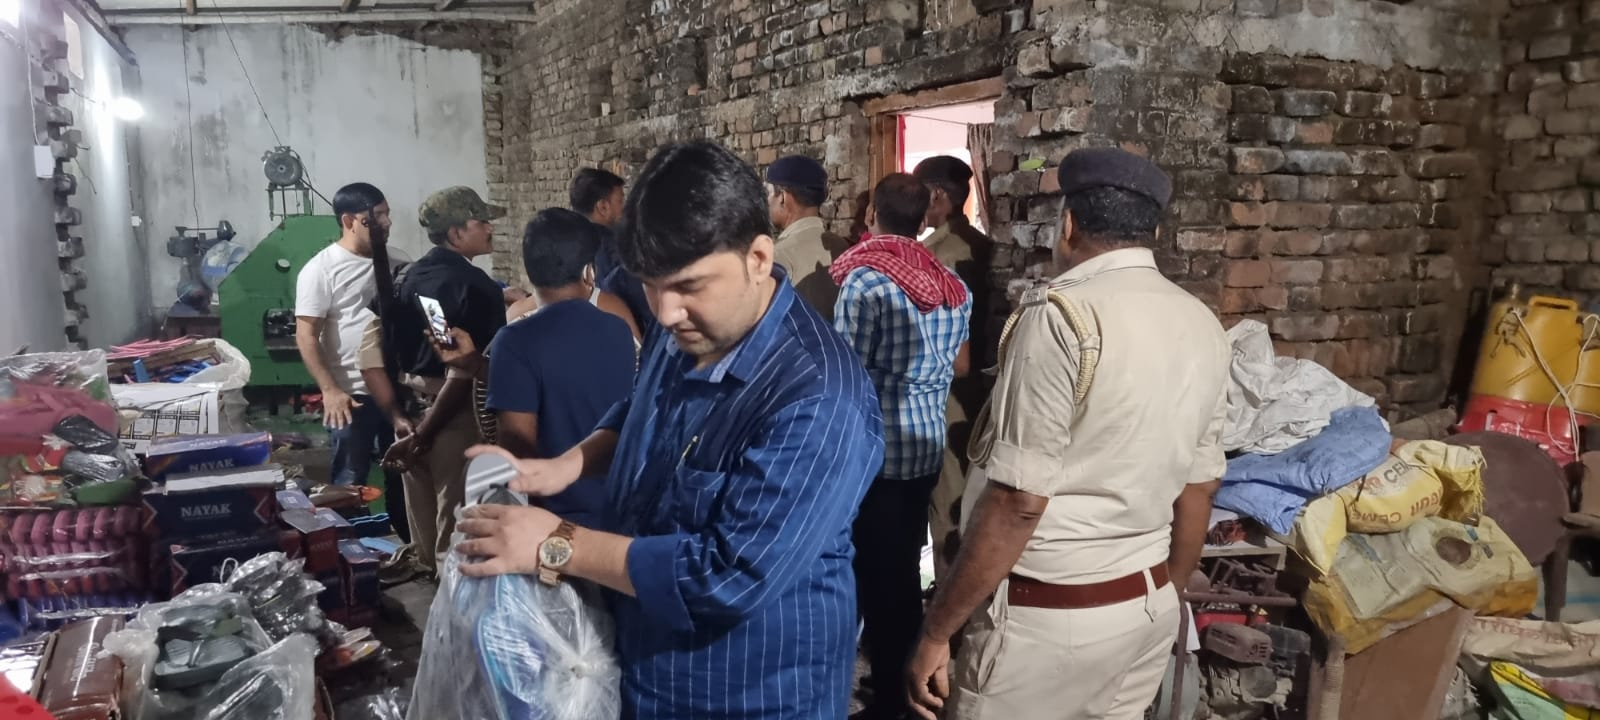 Breaking News -  Counterfeit Relaxo and Aqualite Factories raided in Saran Bihar, fake slippers found